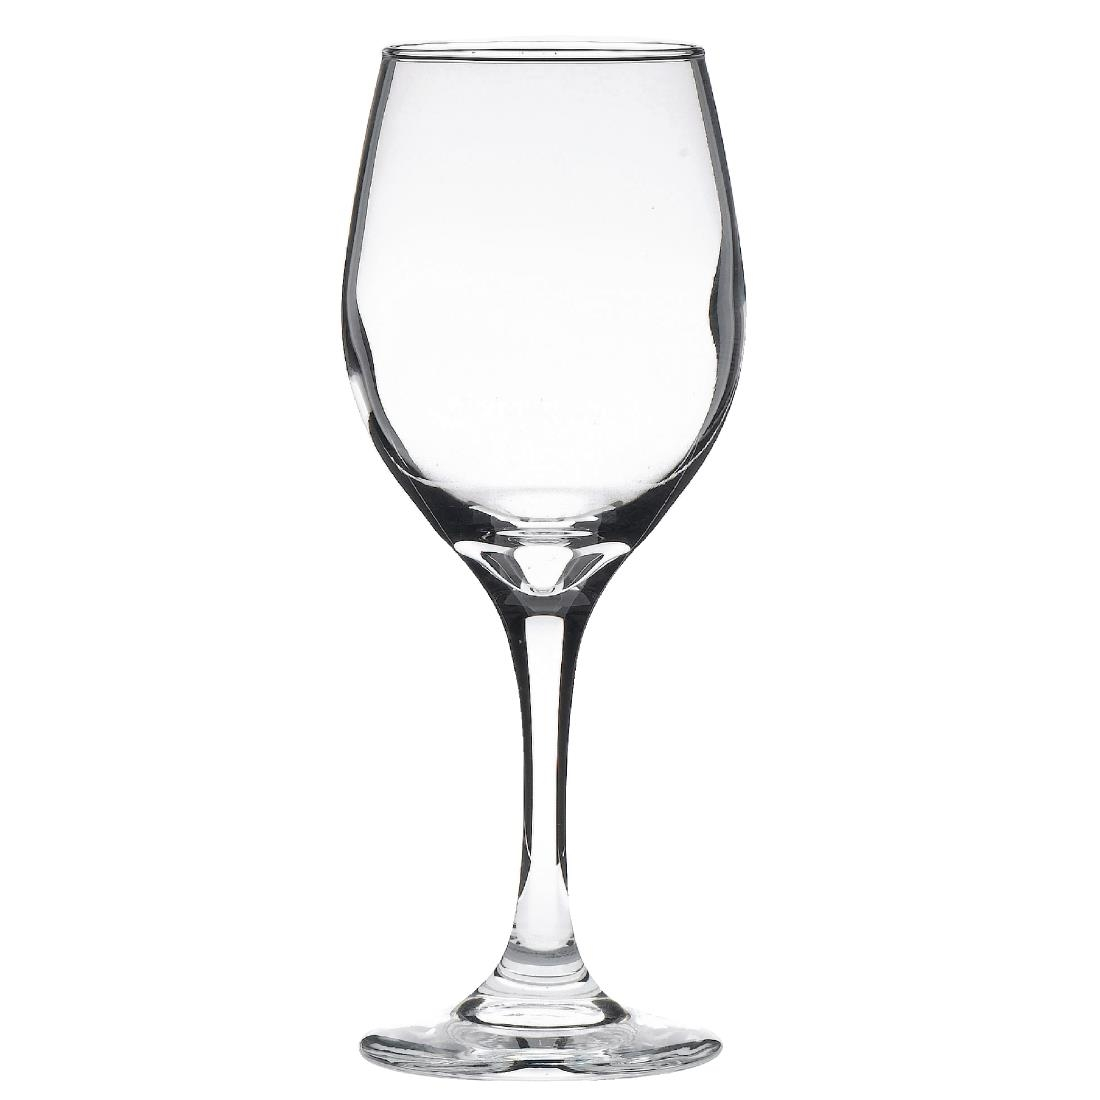 Libbey Perception Wine Glasses 320ml Pack of 12